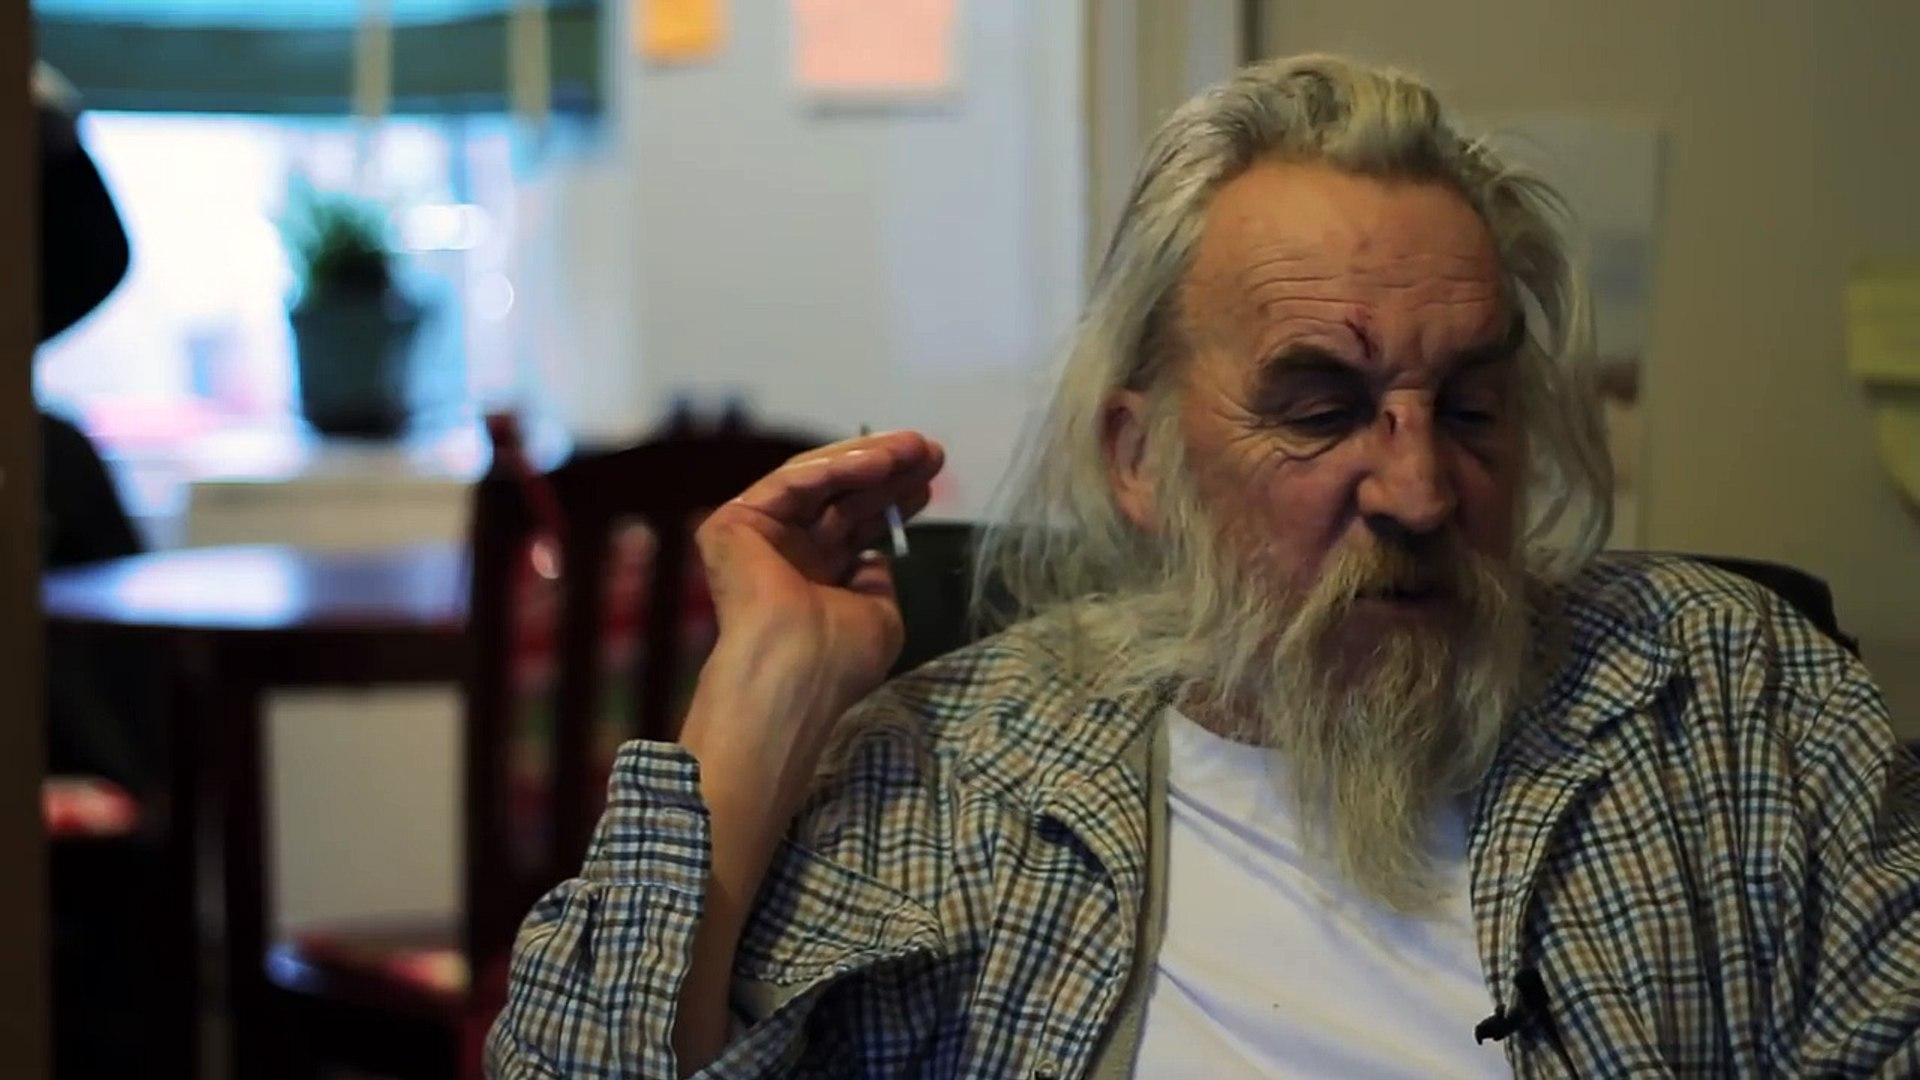 An Interview with my Alcoholic Uncle | a short film by Arthur Cauty